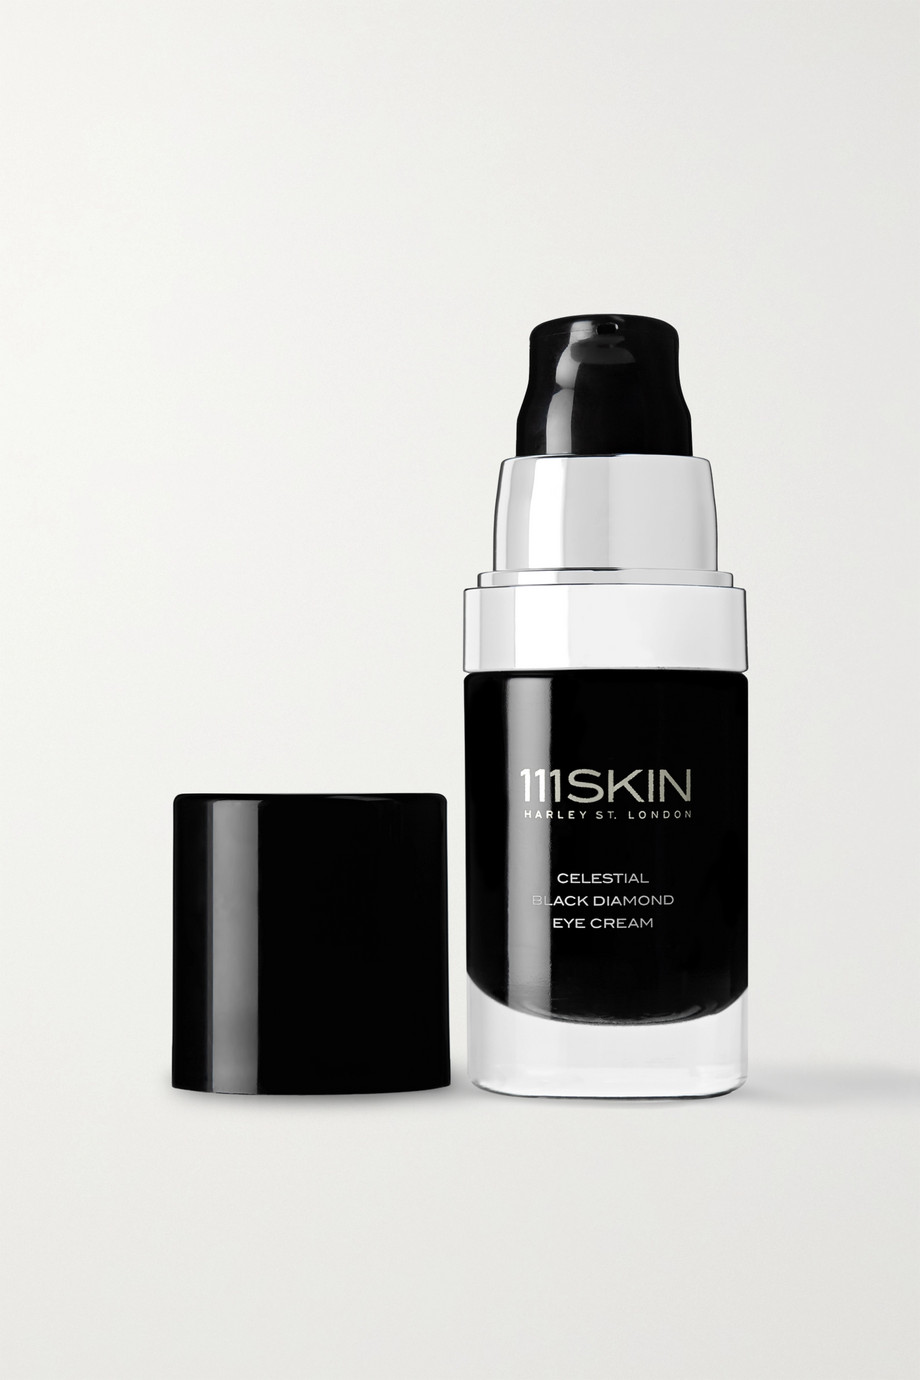 111SKIN Celestial Black Diamond Eye Cream, 15ml